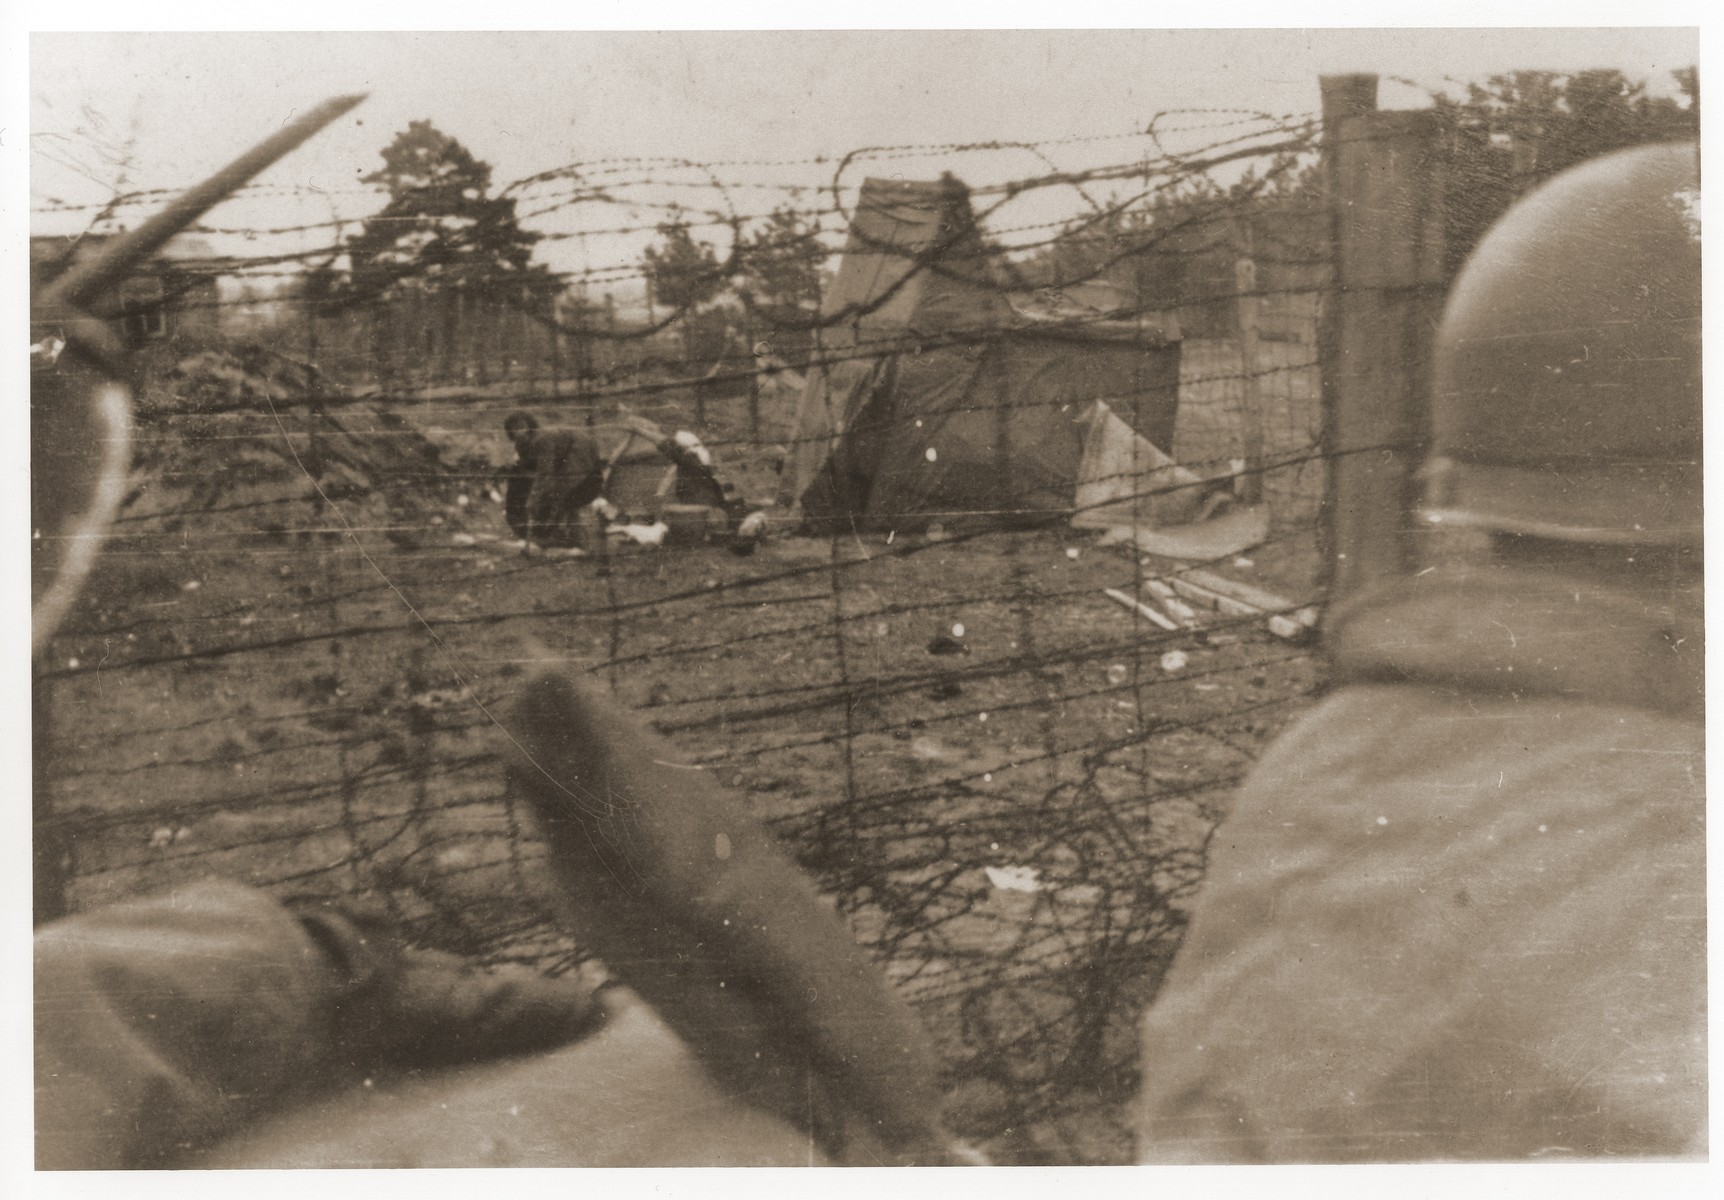 American troops with the 42nd Tank Battalion drive along the fenced-in perimeter of the Bergen-Belsen concentration camp.  The 42nd was part of the 7th Armored Division, which was the only American unit attached to the British Second Army, the unit that liberated Bergen-Belsen.